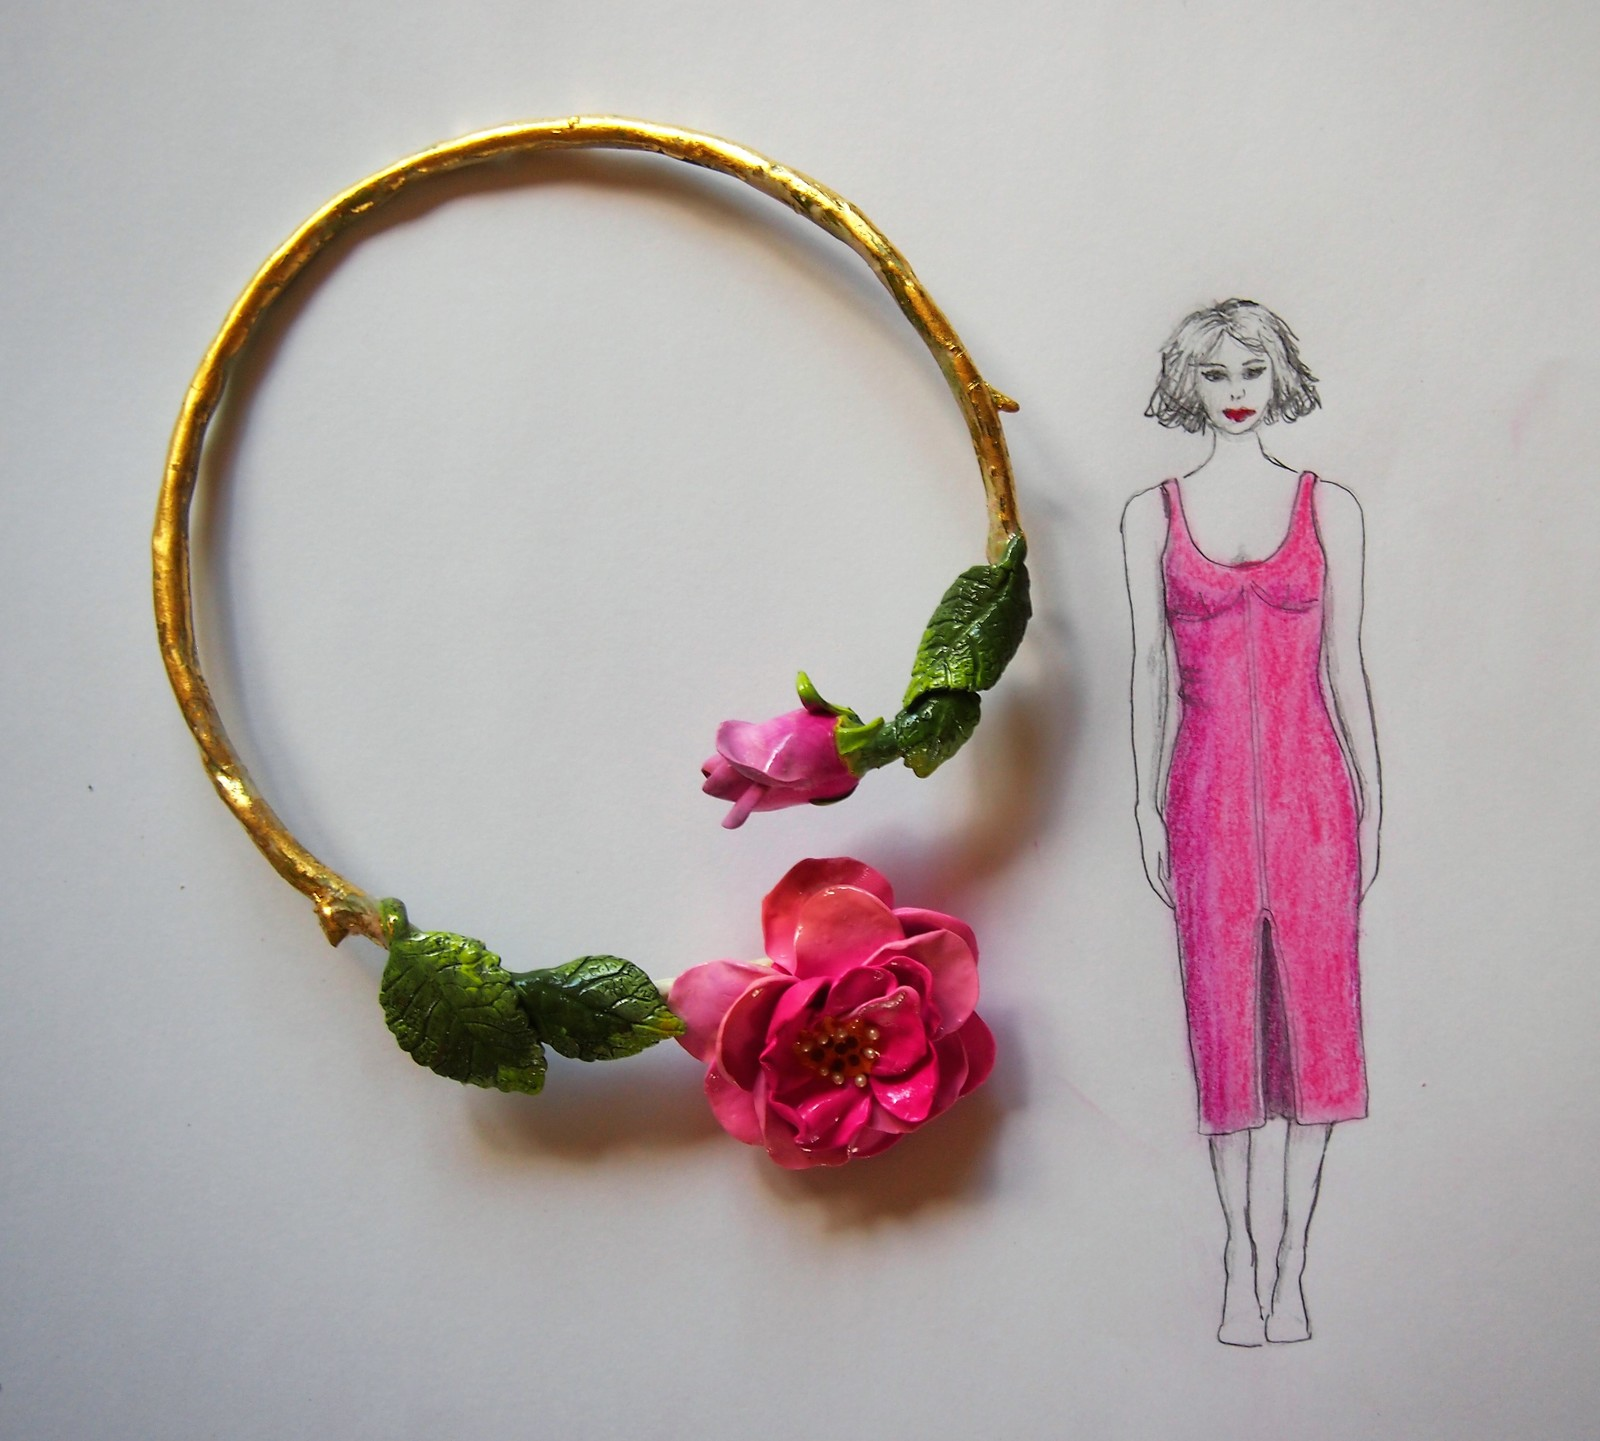 Handmade, Wild Rose Feature Necklace in luscious pink with 22ct gold accents.